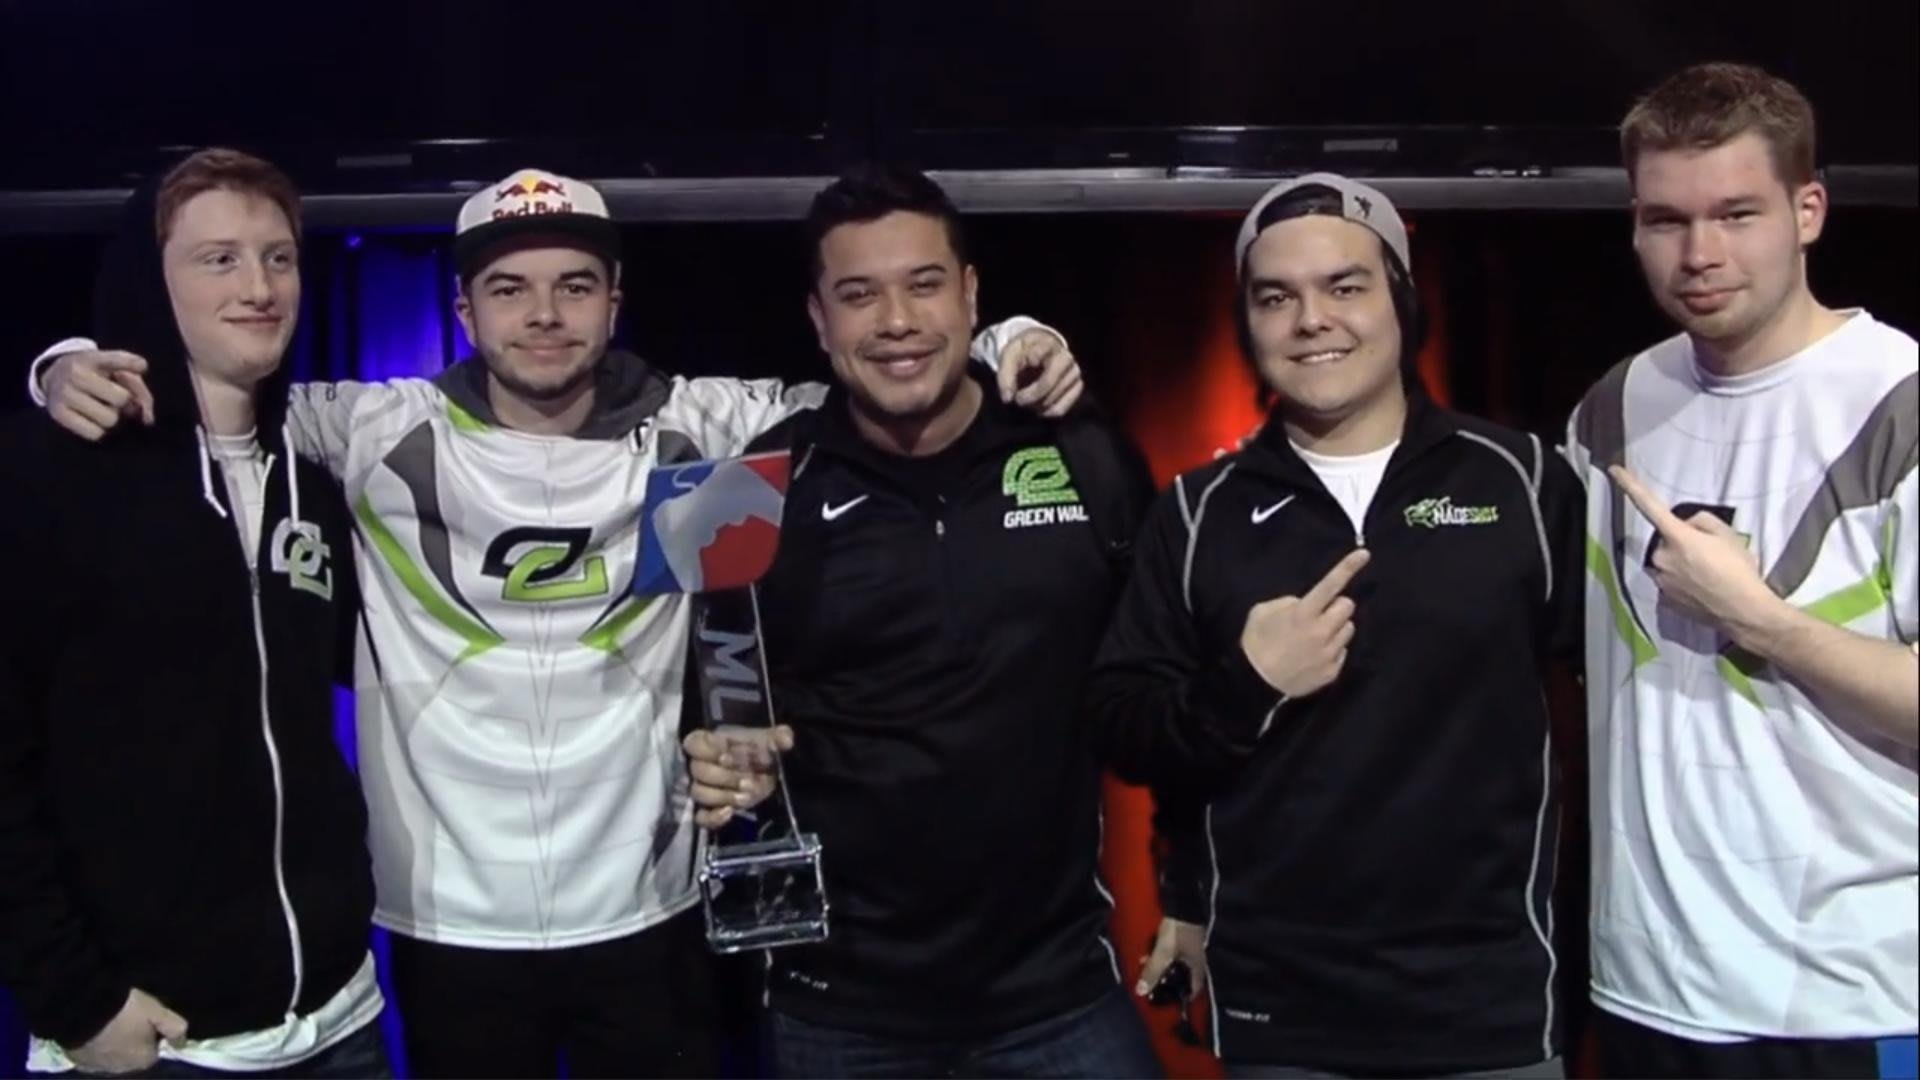 OpTic Gaming con el trofeo del campeonato MLG